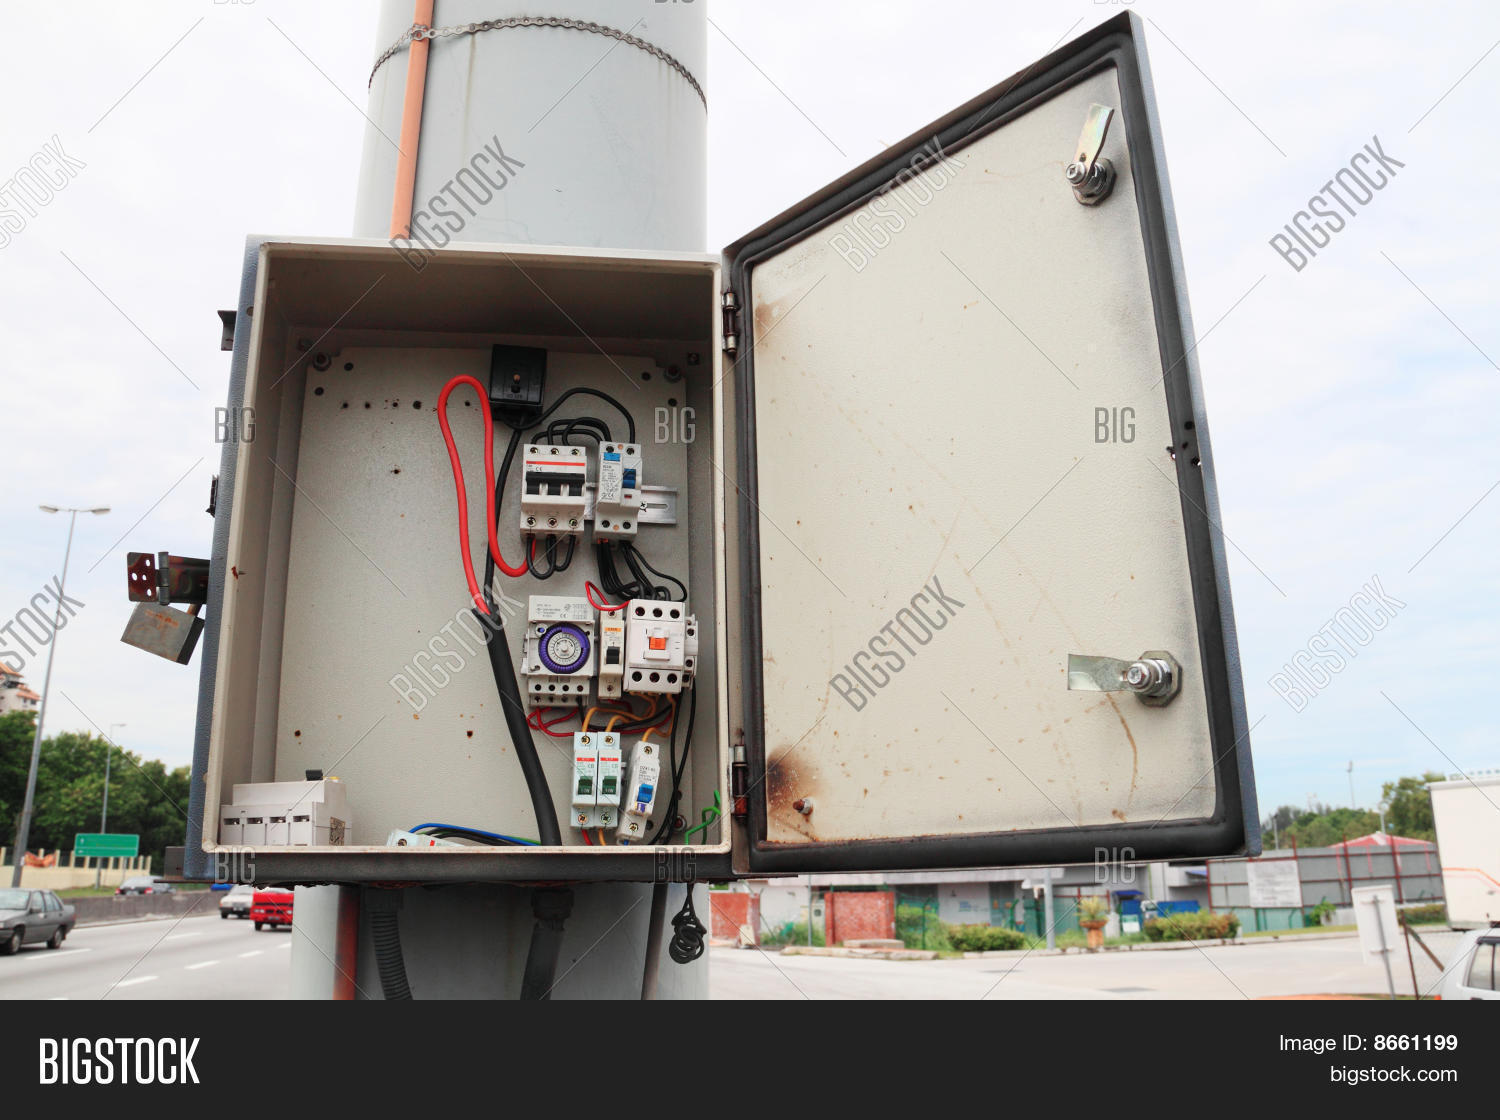 safety fuse box break image & photo (free trial) bigstock cartridge fuse block safety fuse box break open